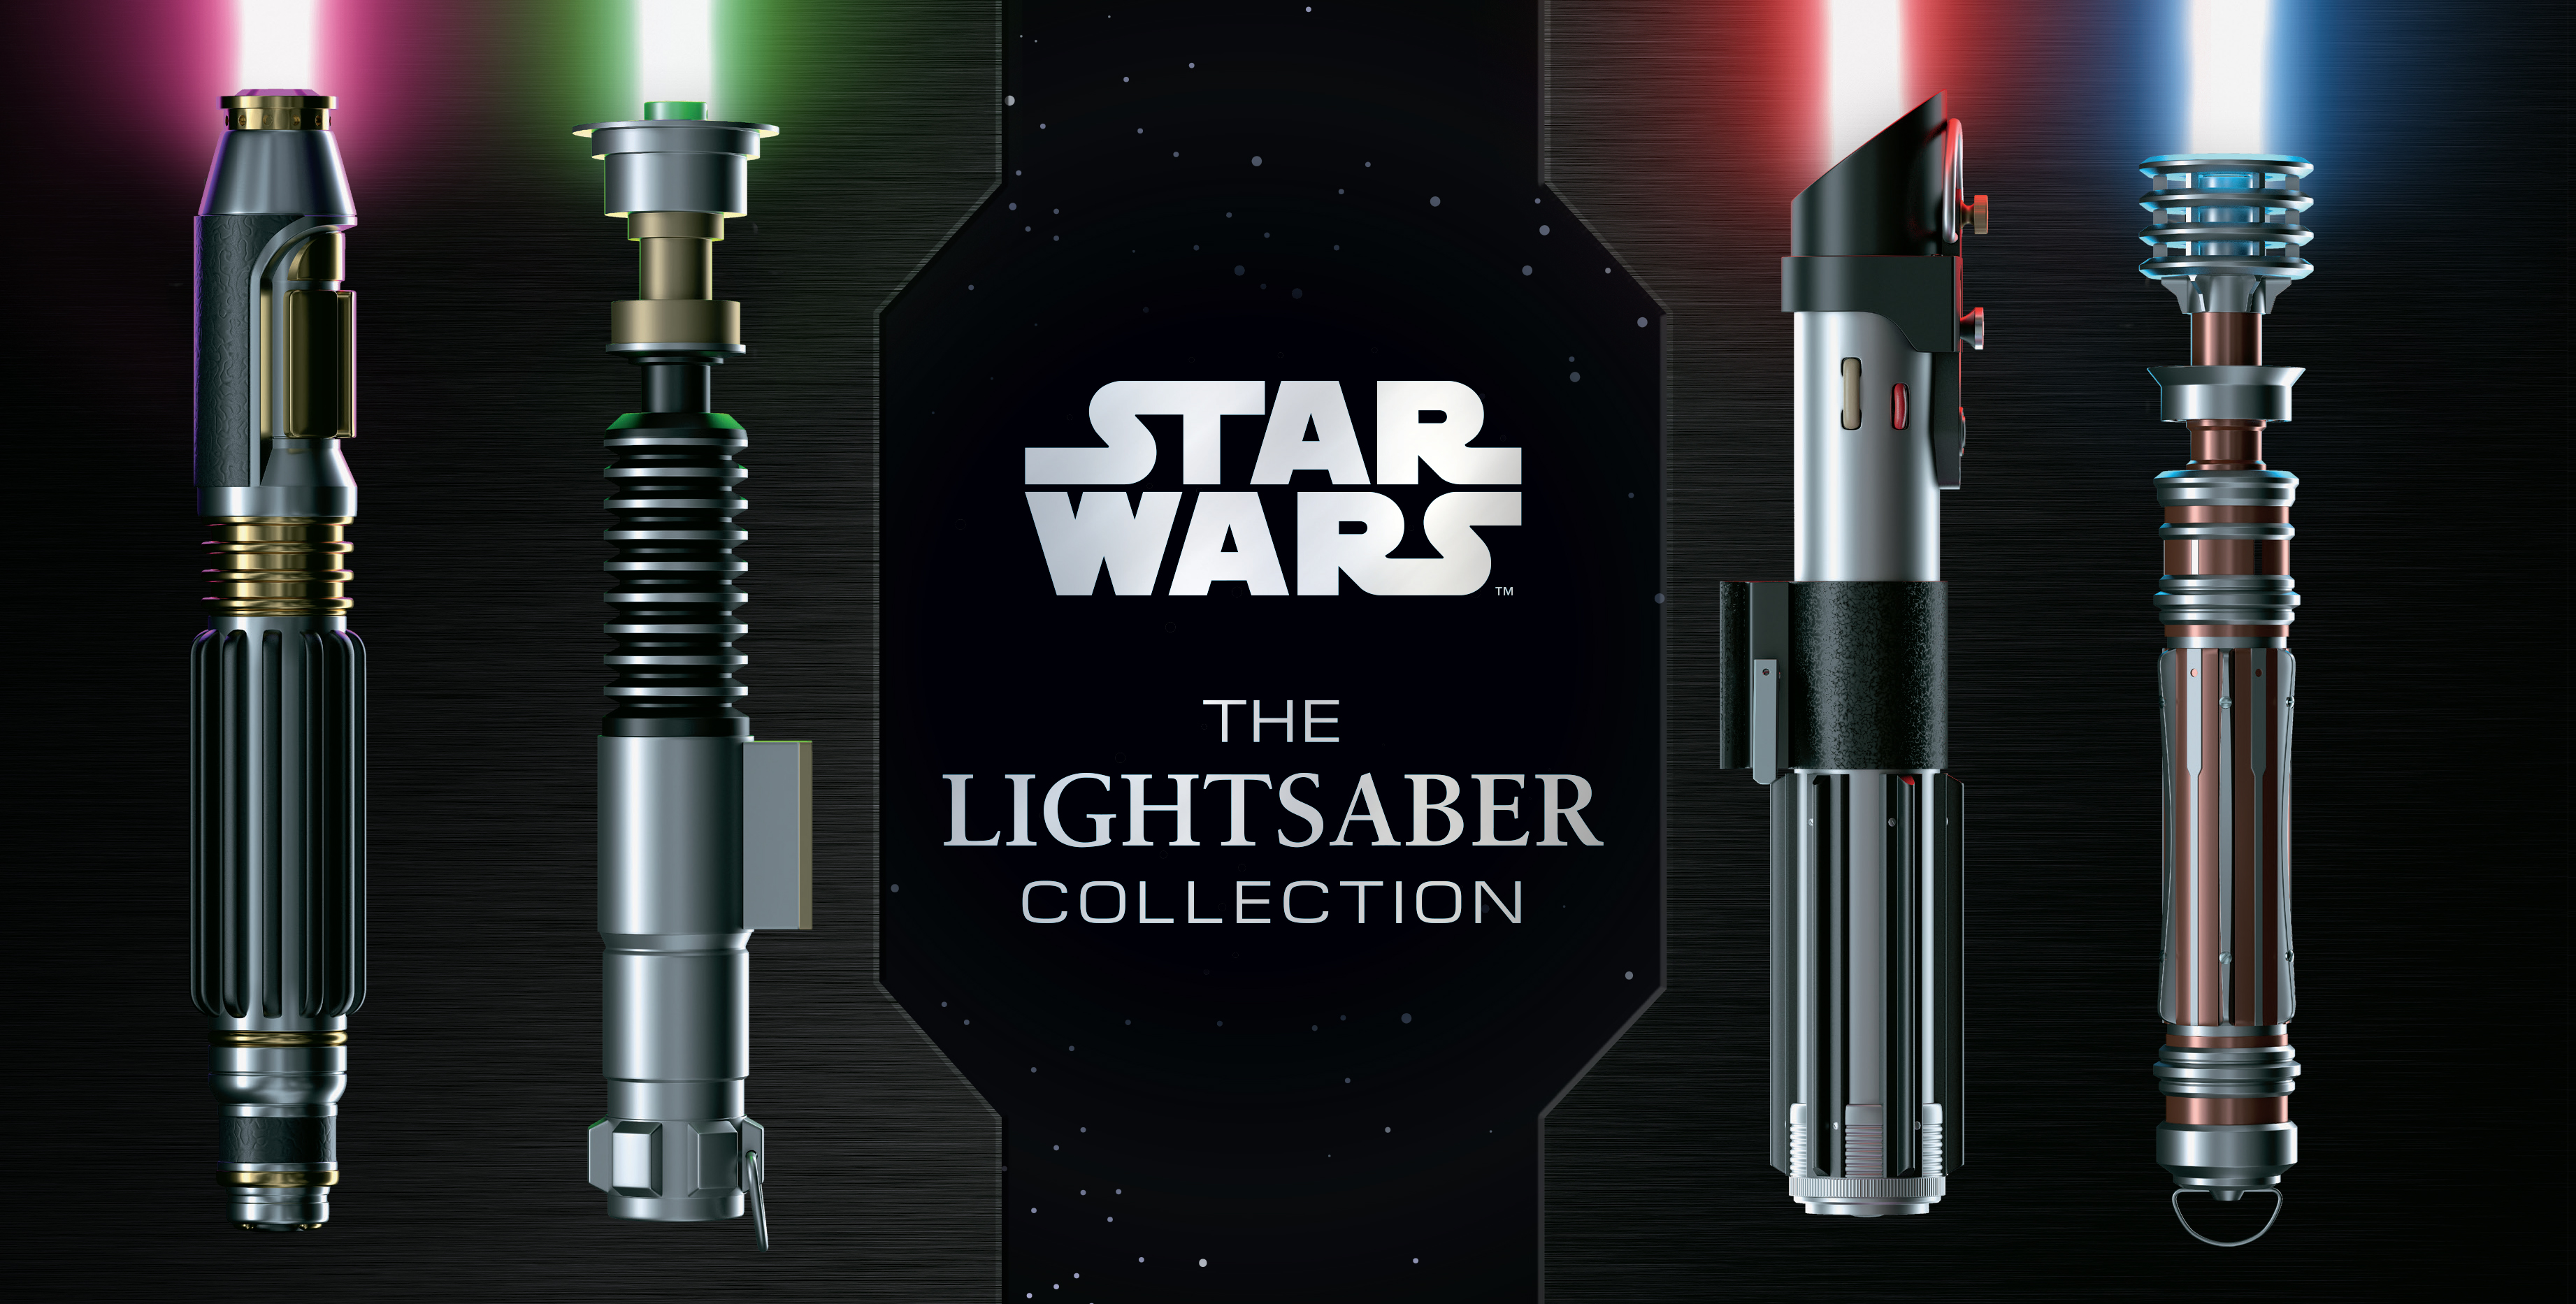 Star Wars: The Lightsaber Collection